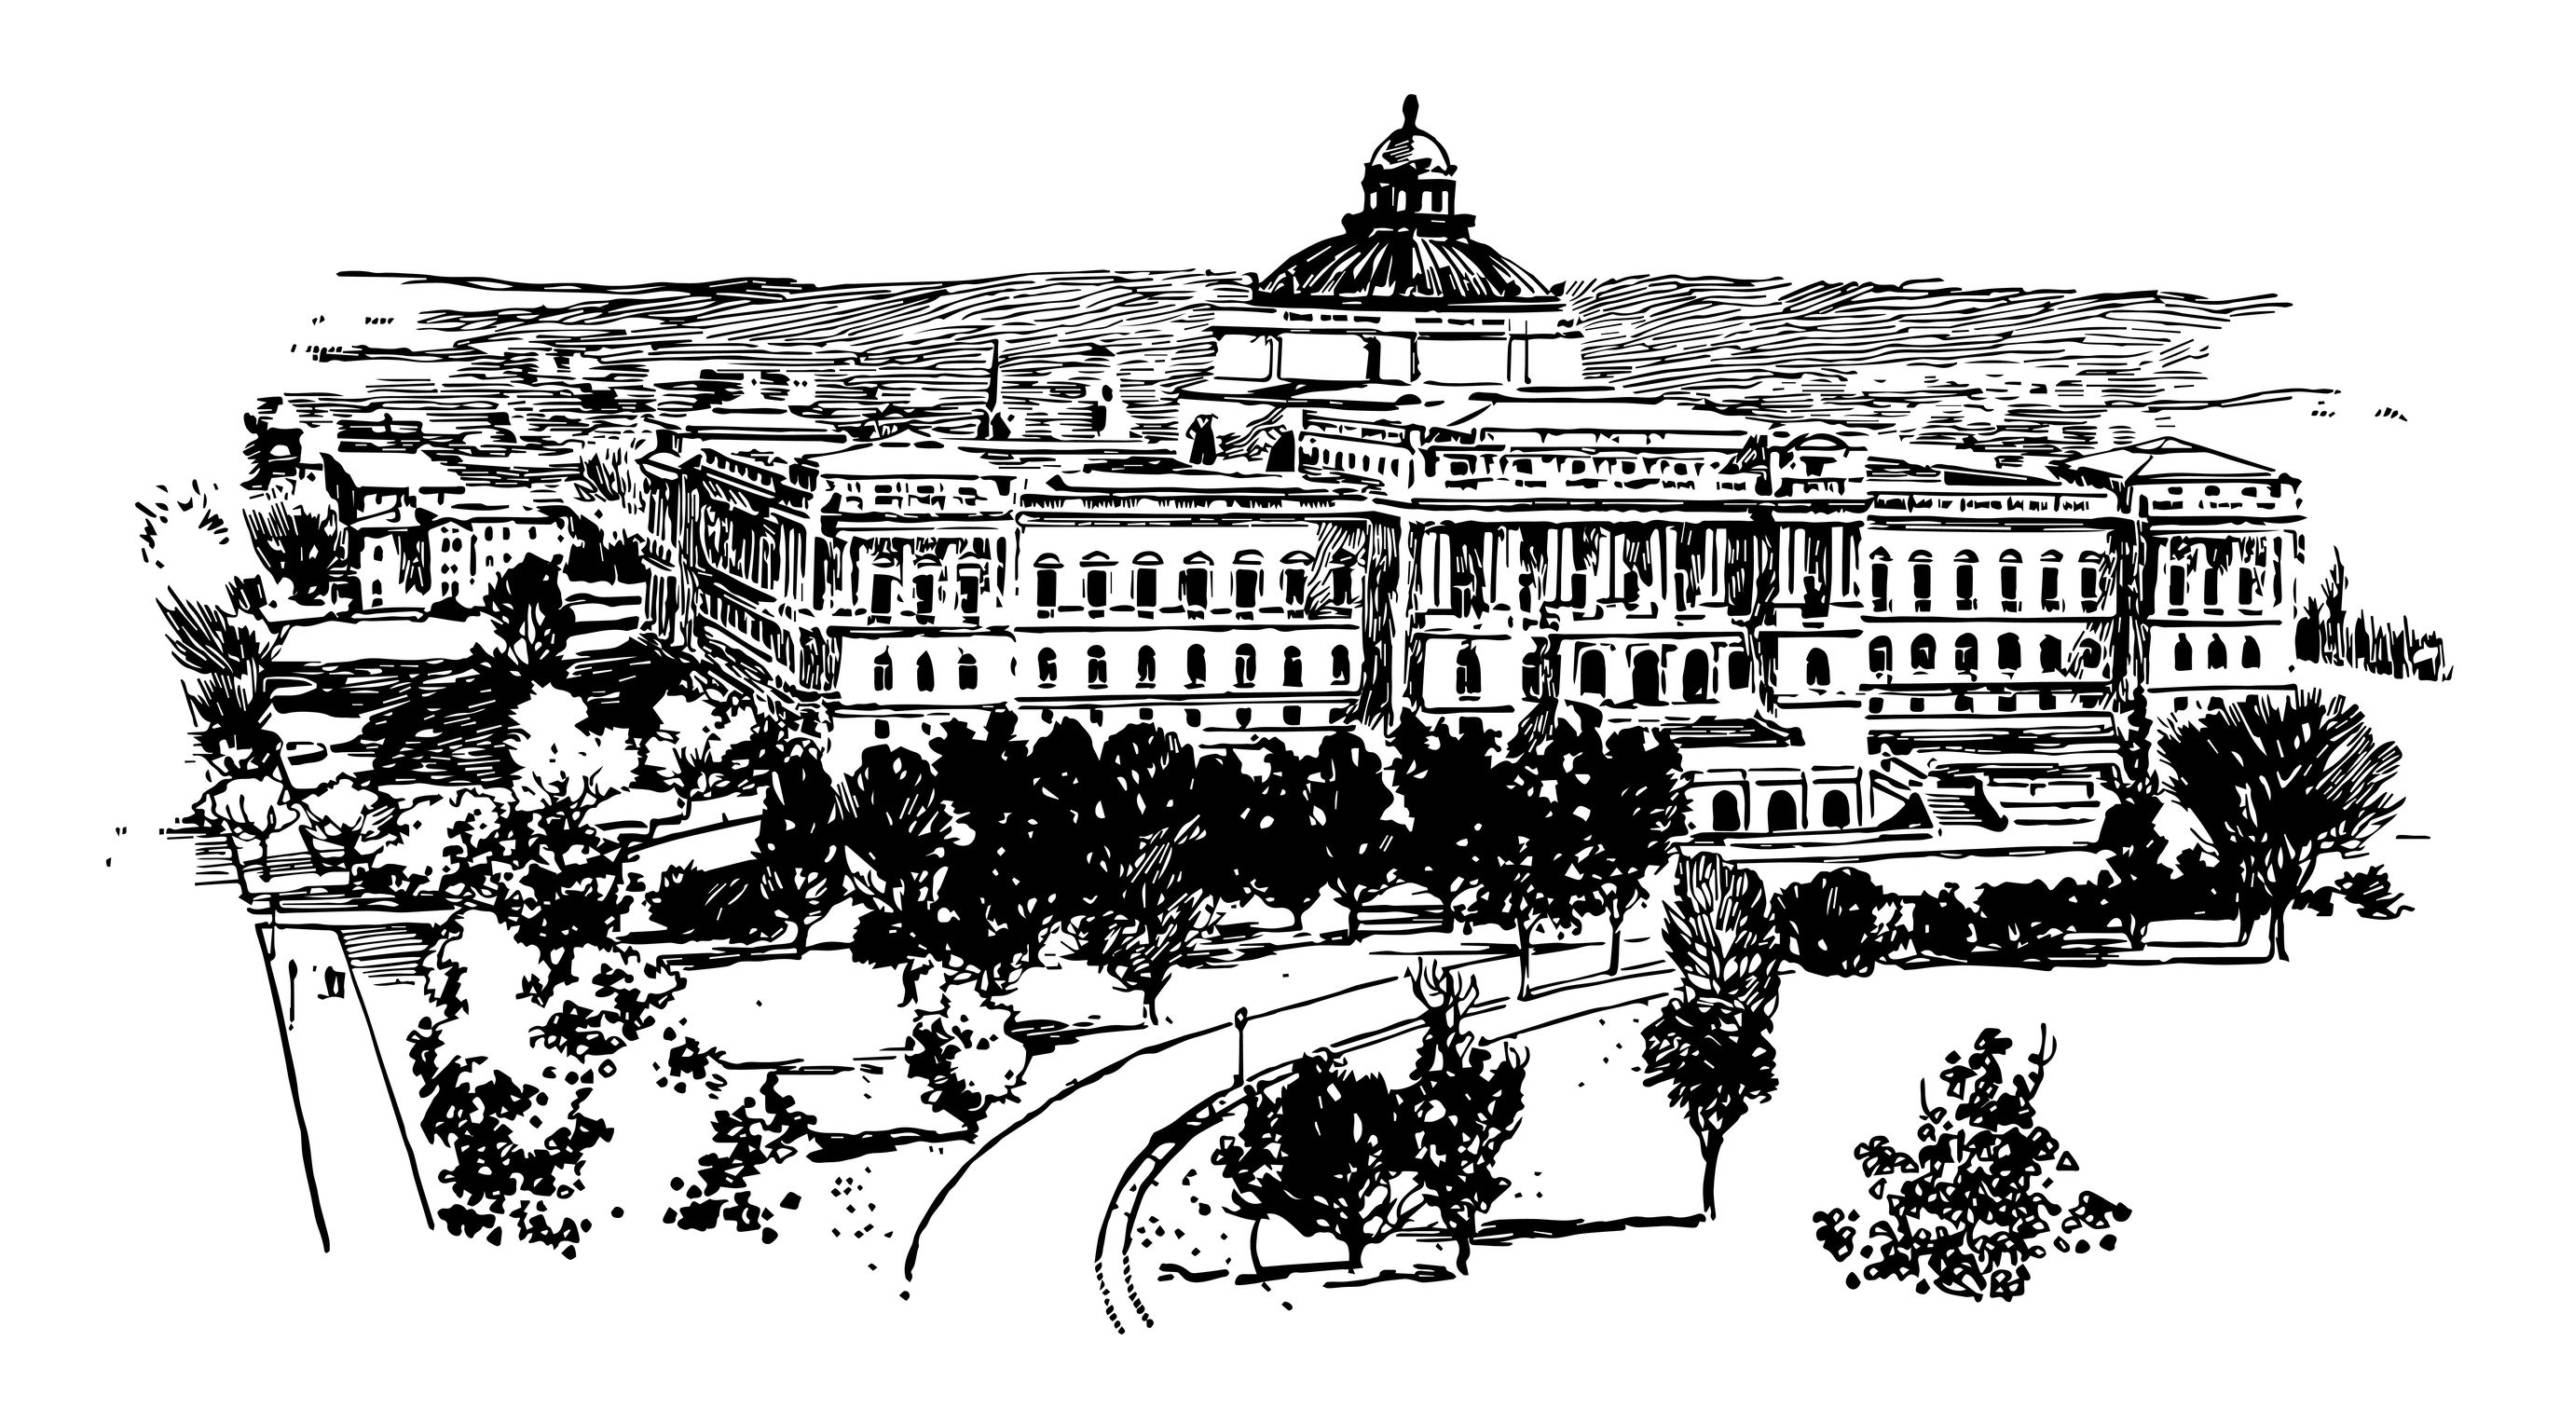 Library of Congress is 220 years old